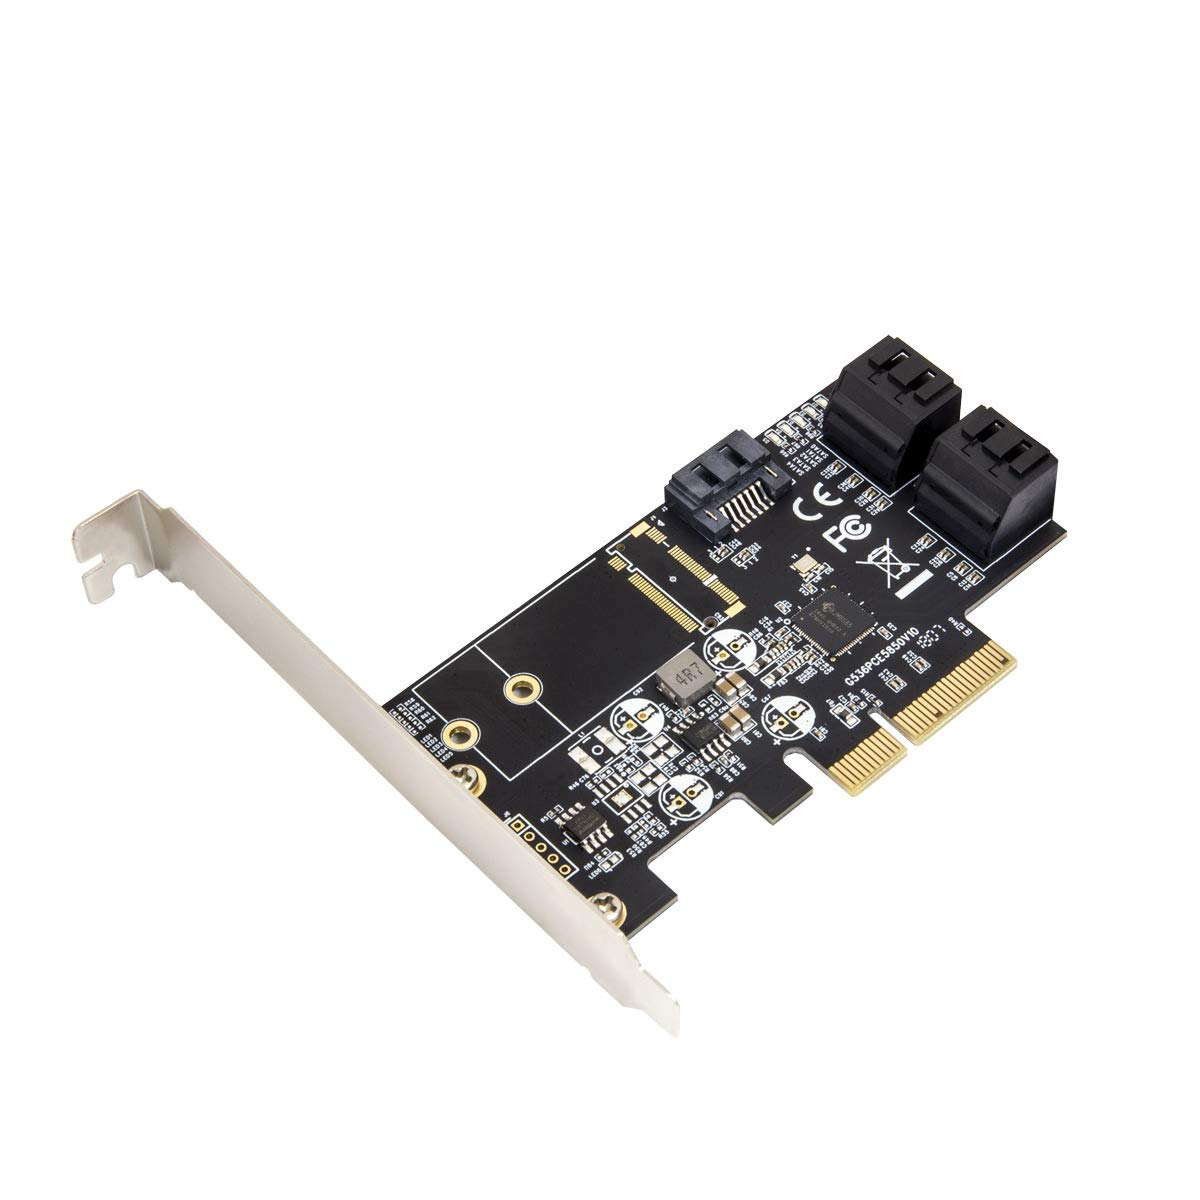 I/O CREST Internal 5 Port Non-Raid SATA III 6GB/S Pci-E X4 Controller Card for Desktop PC Support SSD and HDD with Low Profile Bracket. JMB585 Chipset by I/O CREST